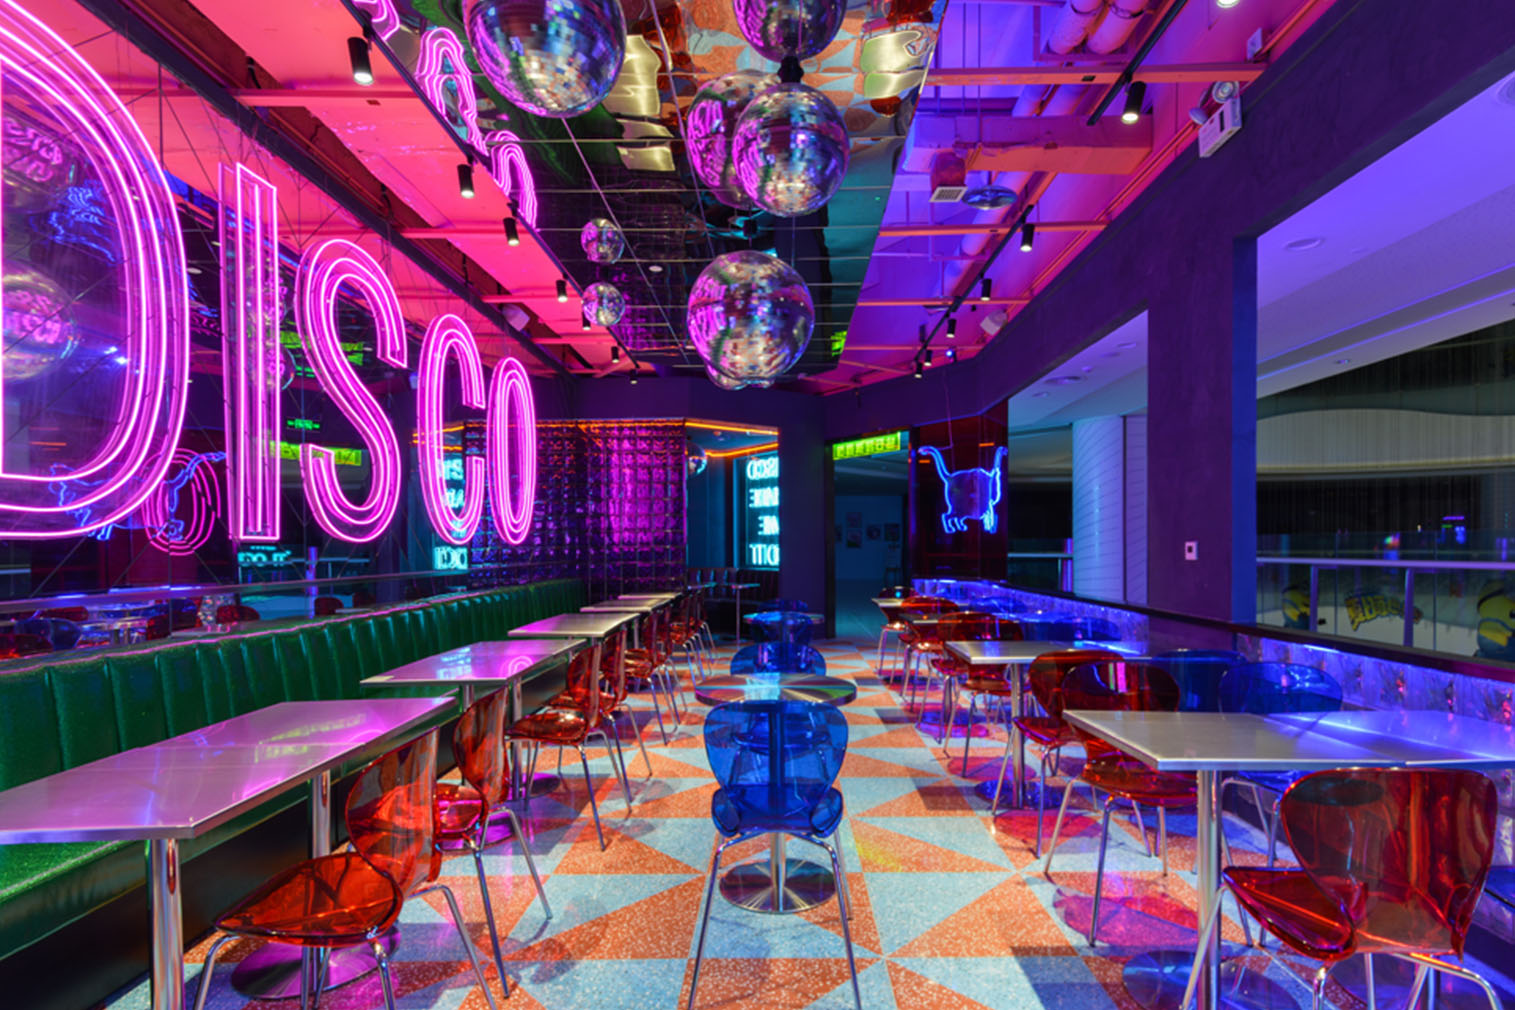 Inside China S Glowing Neon Restaurants The Spaces